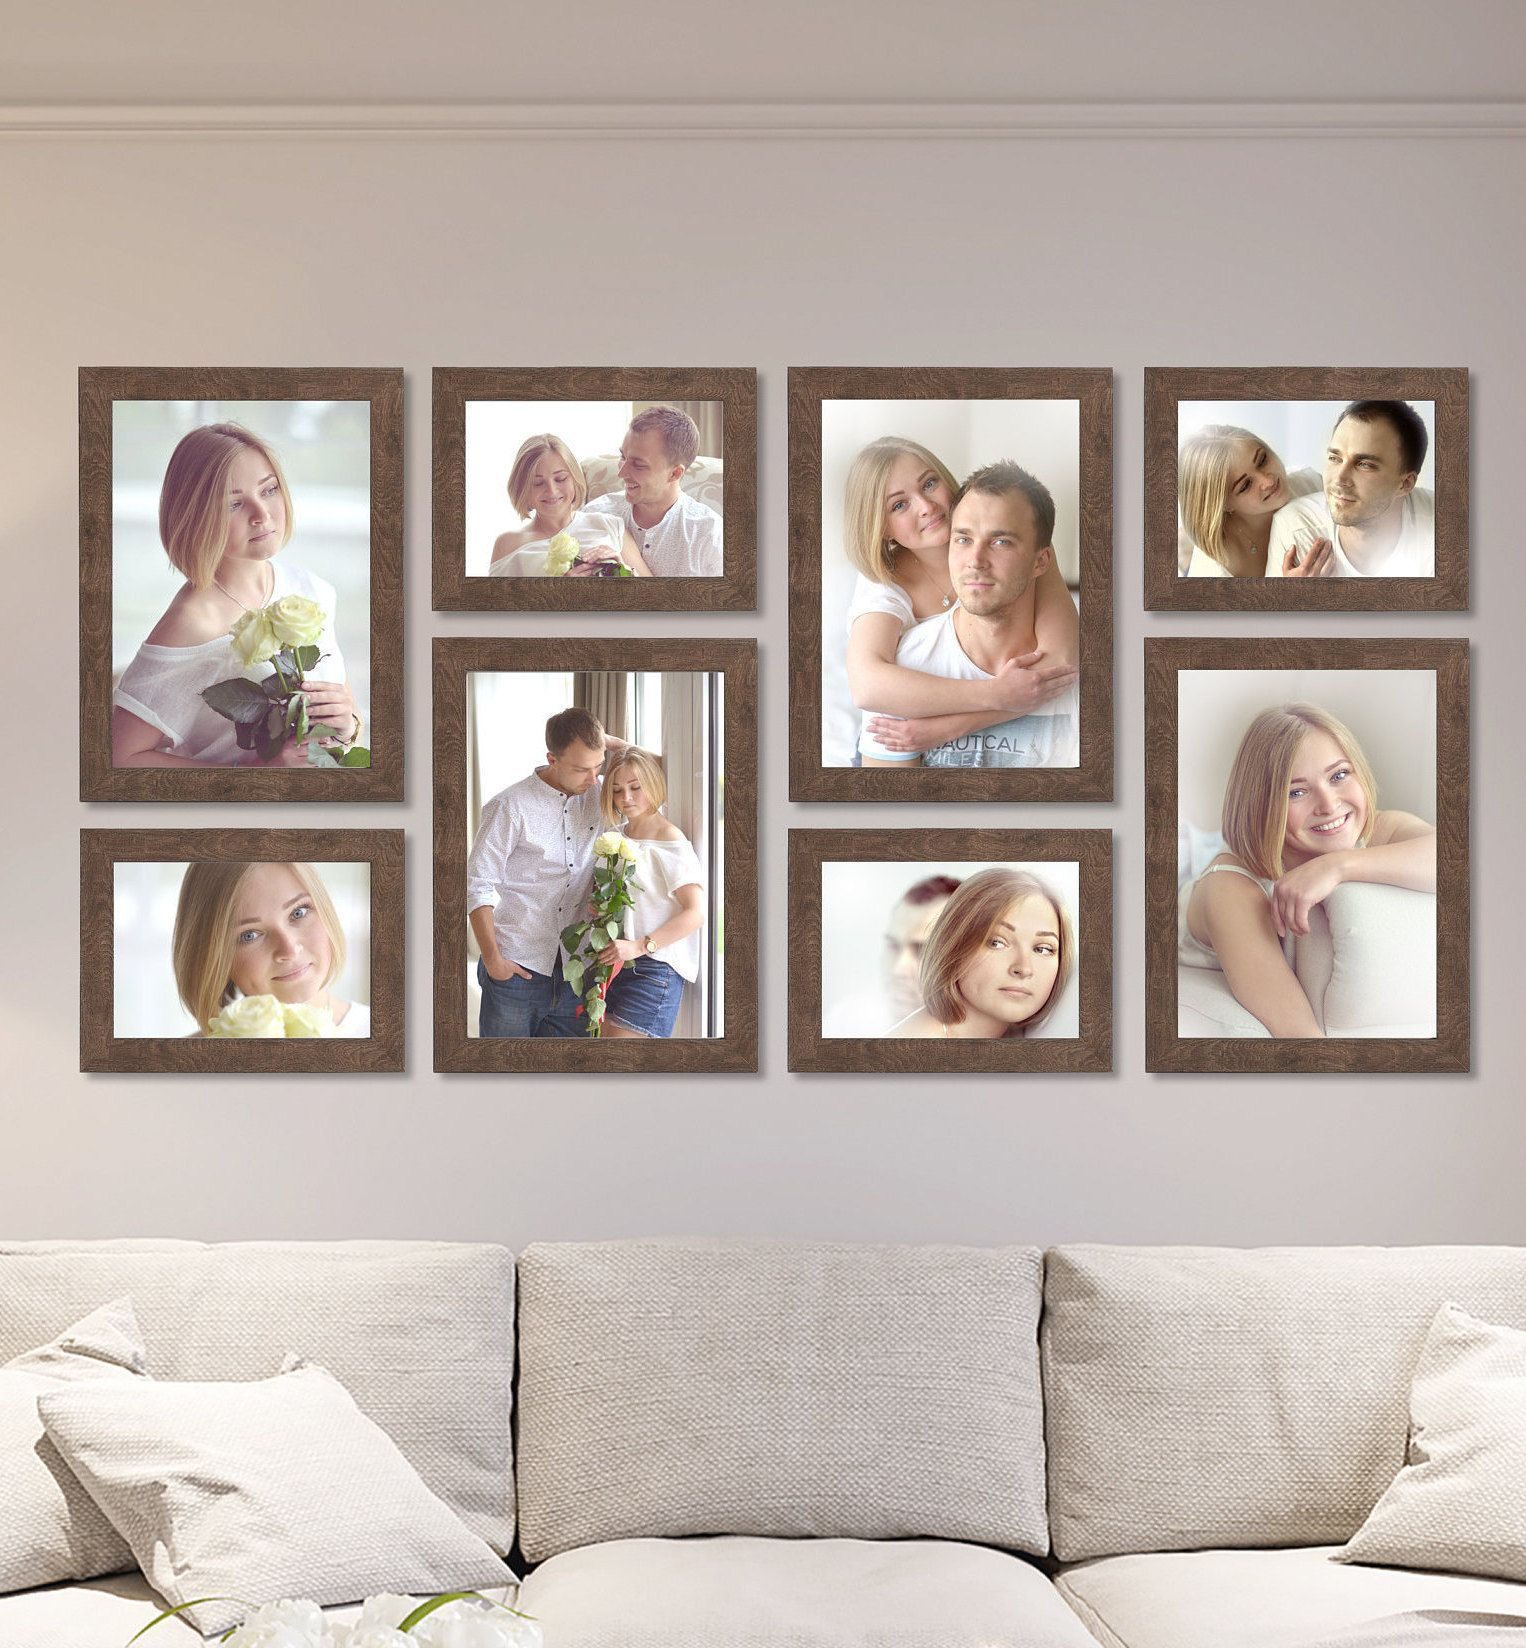 Home Interior Decoration This 8 Pack Gallery Wall Set Of Wooden Picture Frames Is Great For Ho Picture Frame Decor Photo Frame Decoration Wooden Picture Frames